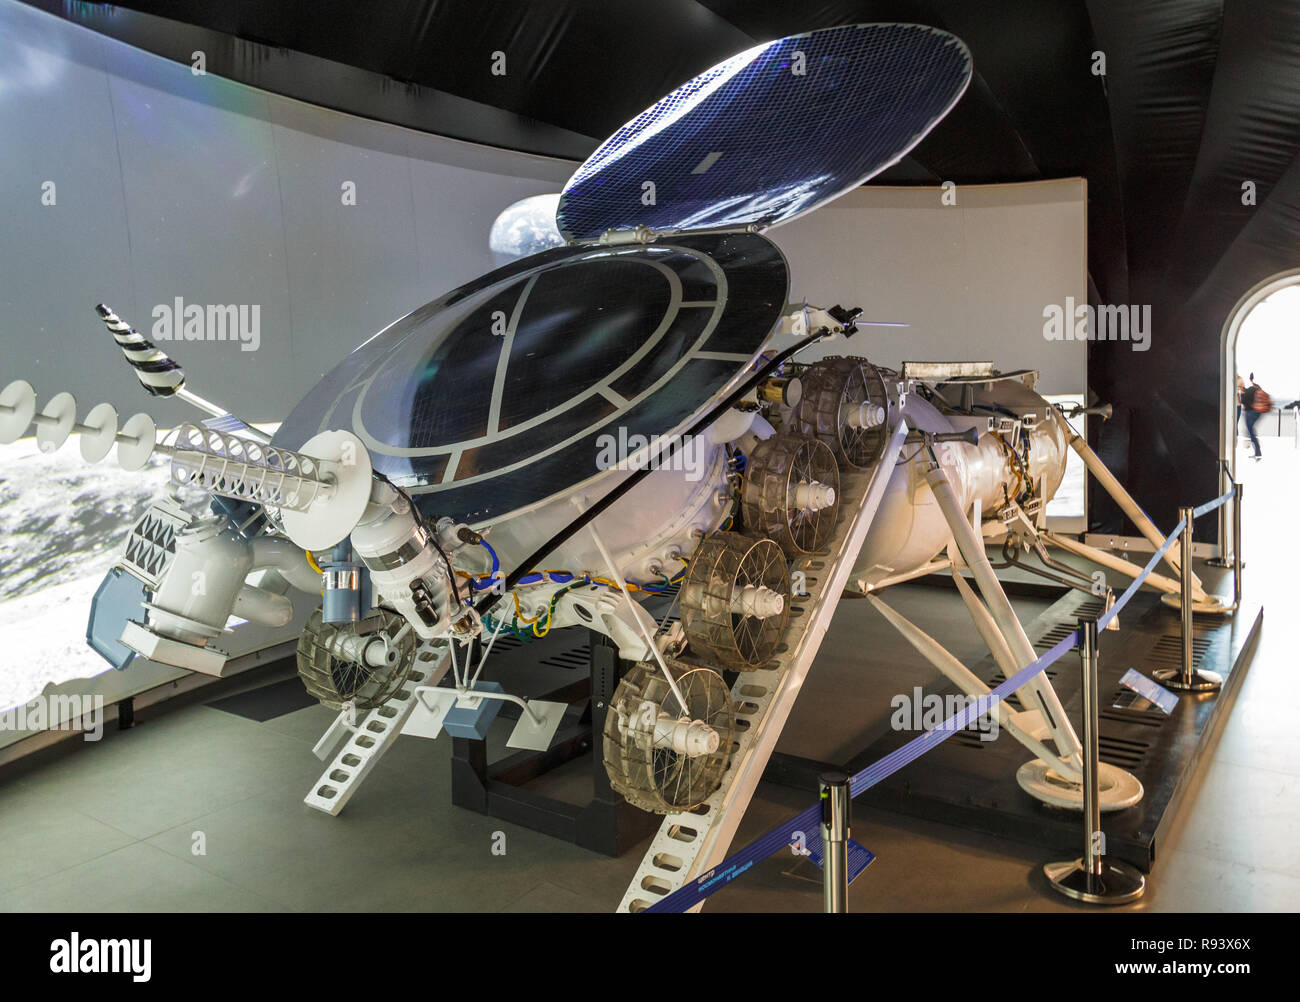 Moscow, Russia - November 28, 2018: Interior of the Space pavilion at VDNH. Lunokhod Moonwalker was a series of Soviet robotic lunar rovers designed t Stock Photo